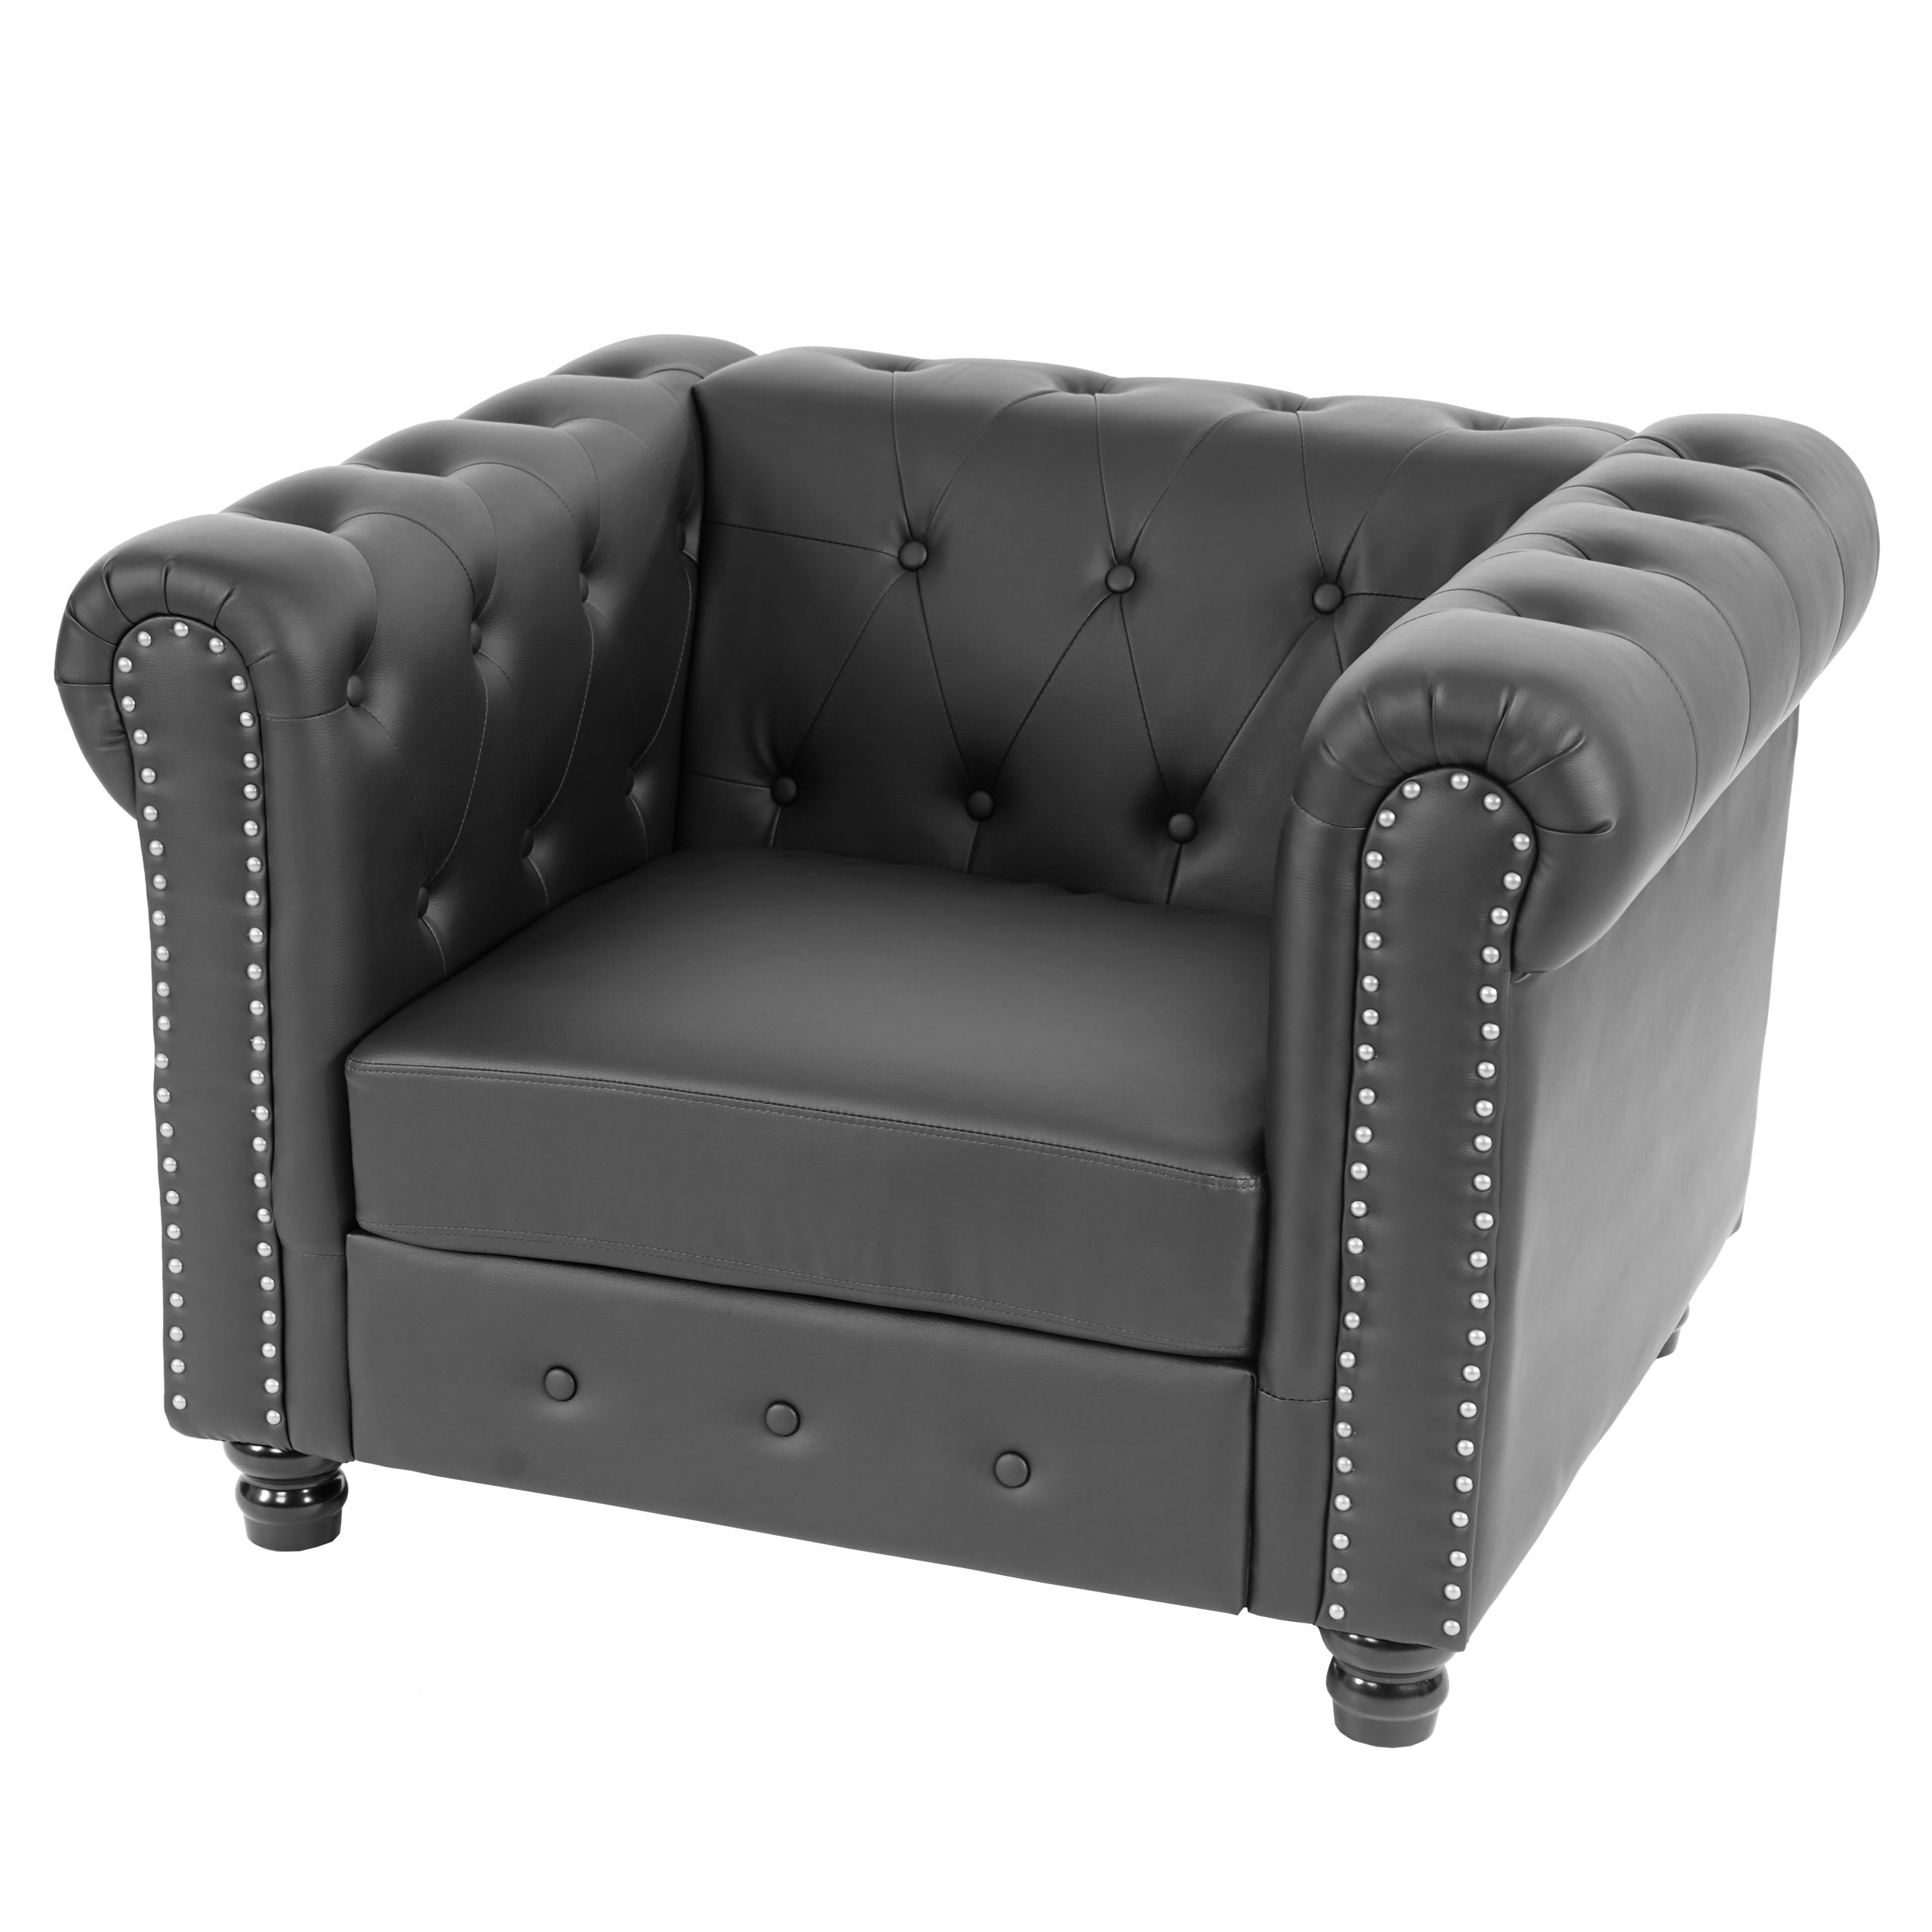 luxus sessel loungesessel relaxsessel chesterfield kunstleder runde f e schwarz. Black Bedroom Furniture Sets. Home Design Ideas